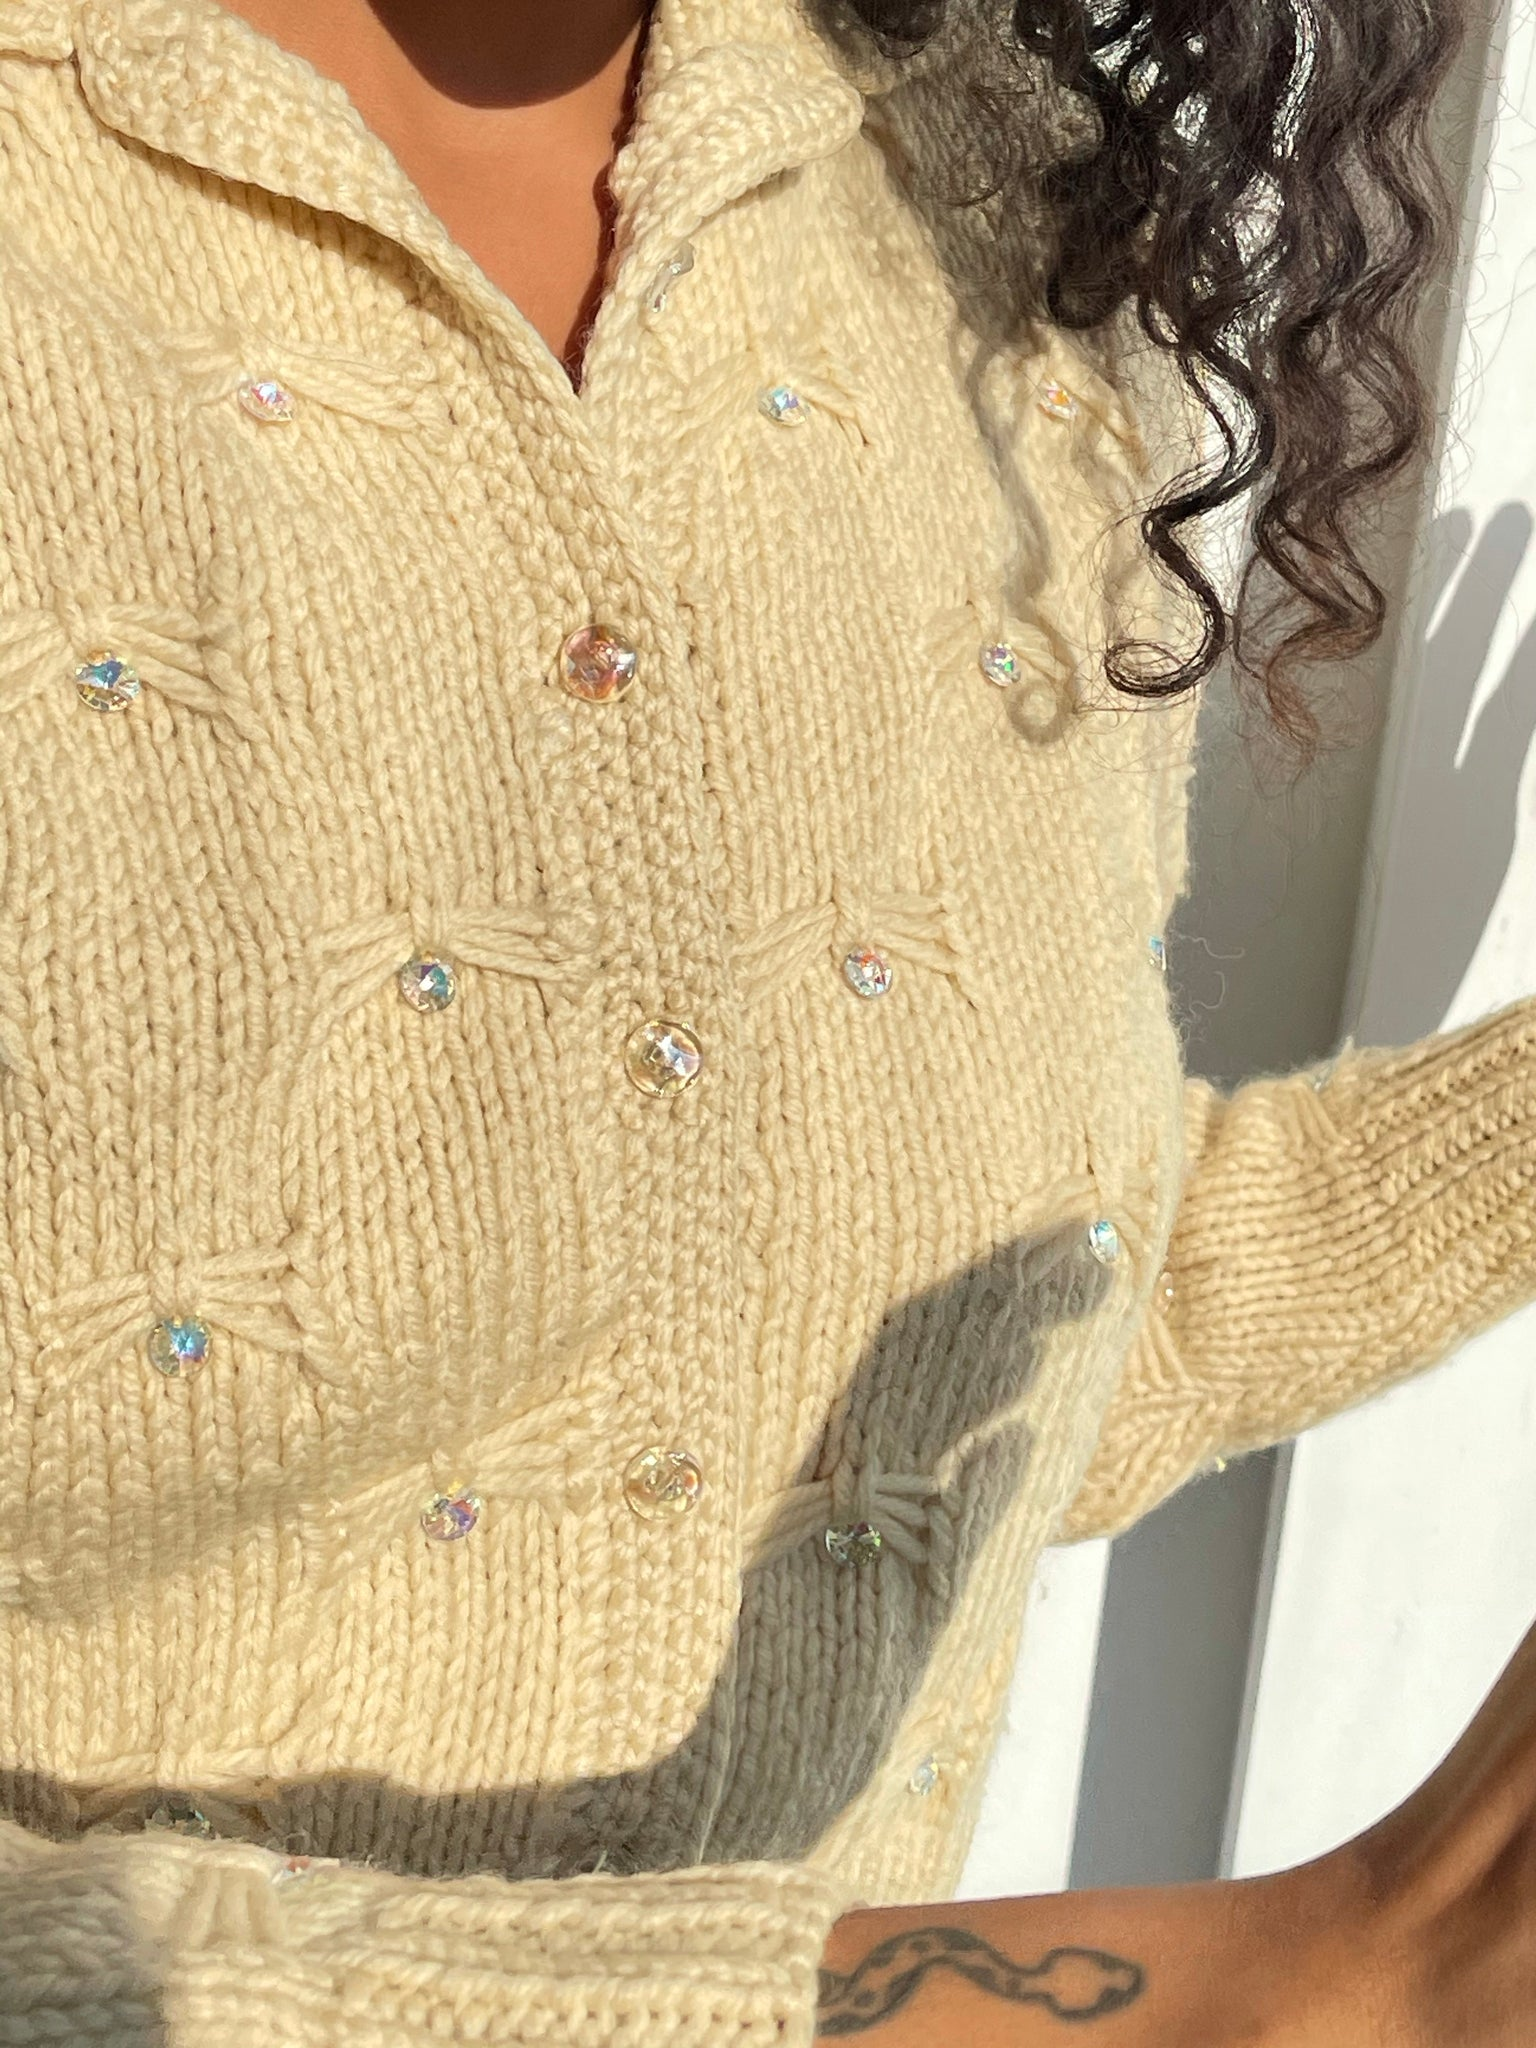 Petite Wool Cardigan With Beaded Details - Size Small